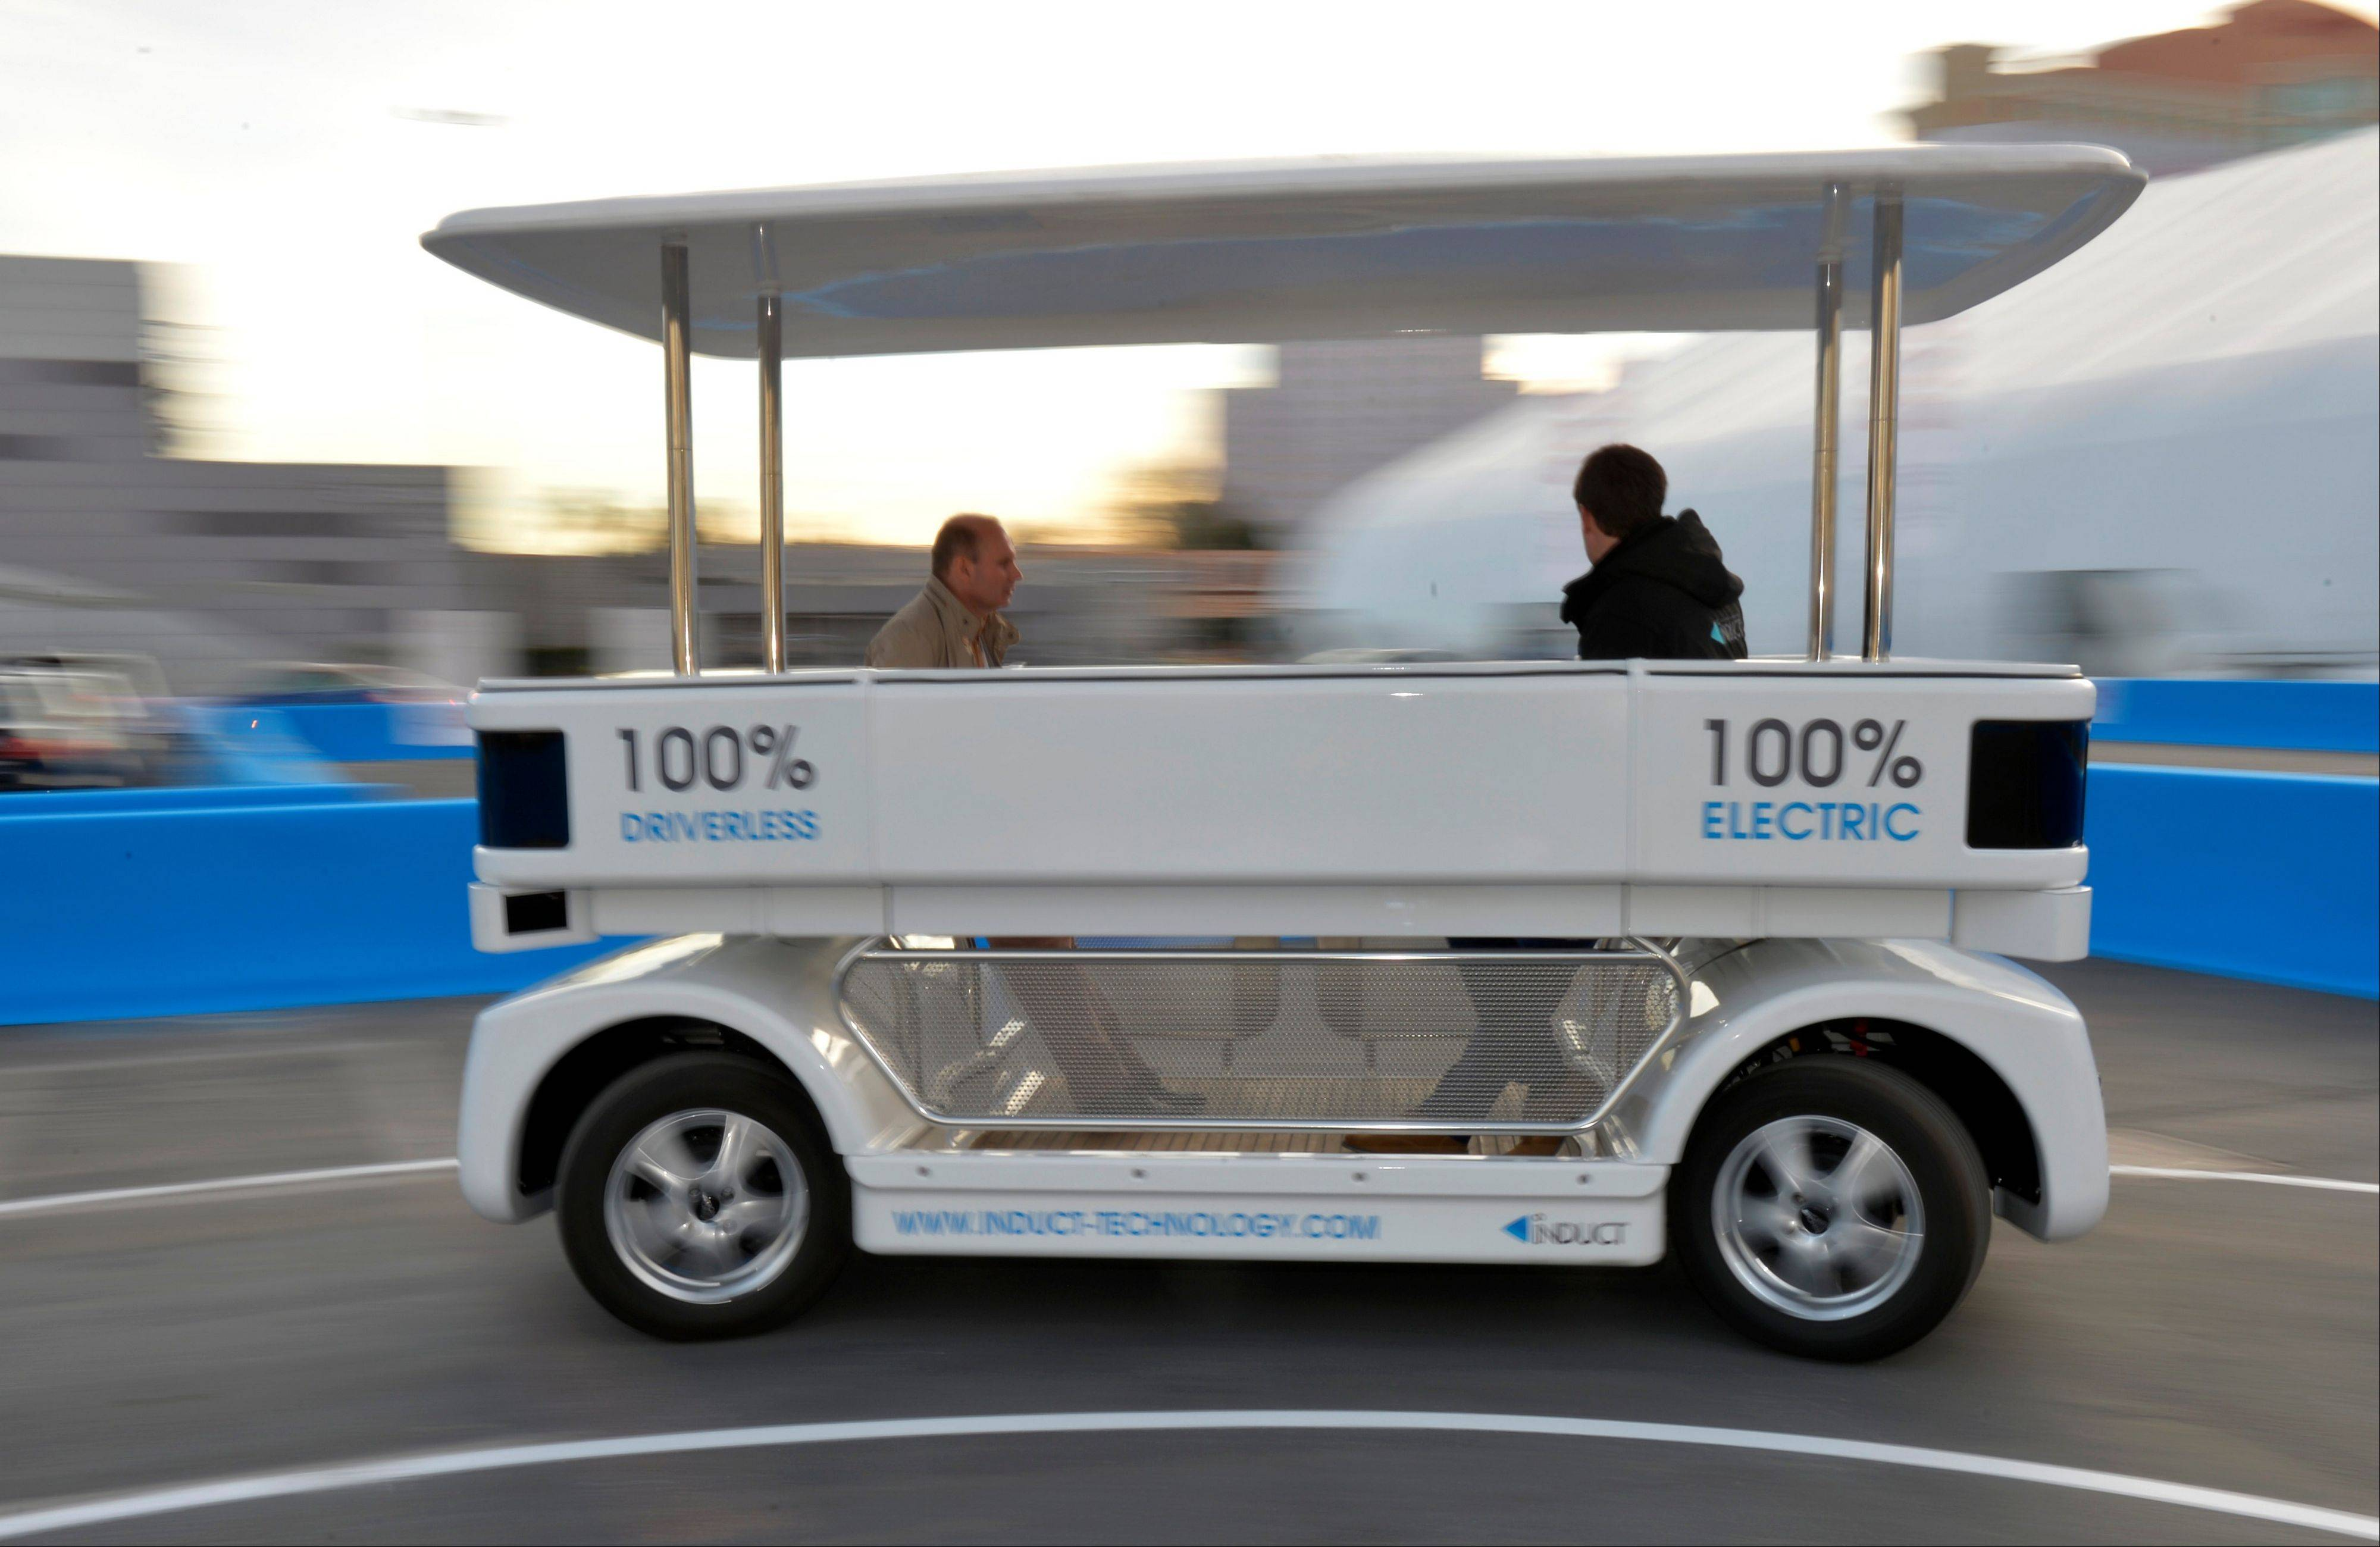 Induct demonstrates their new Navia driverless shuttle at the International Consumer Electronics Show in Las Vegas.